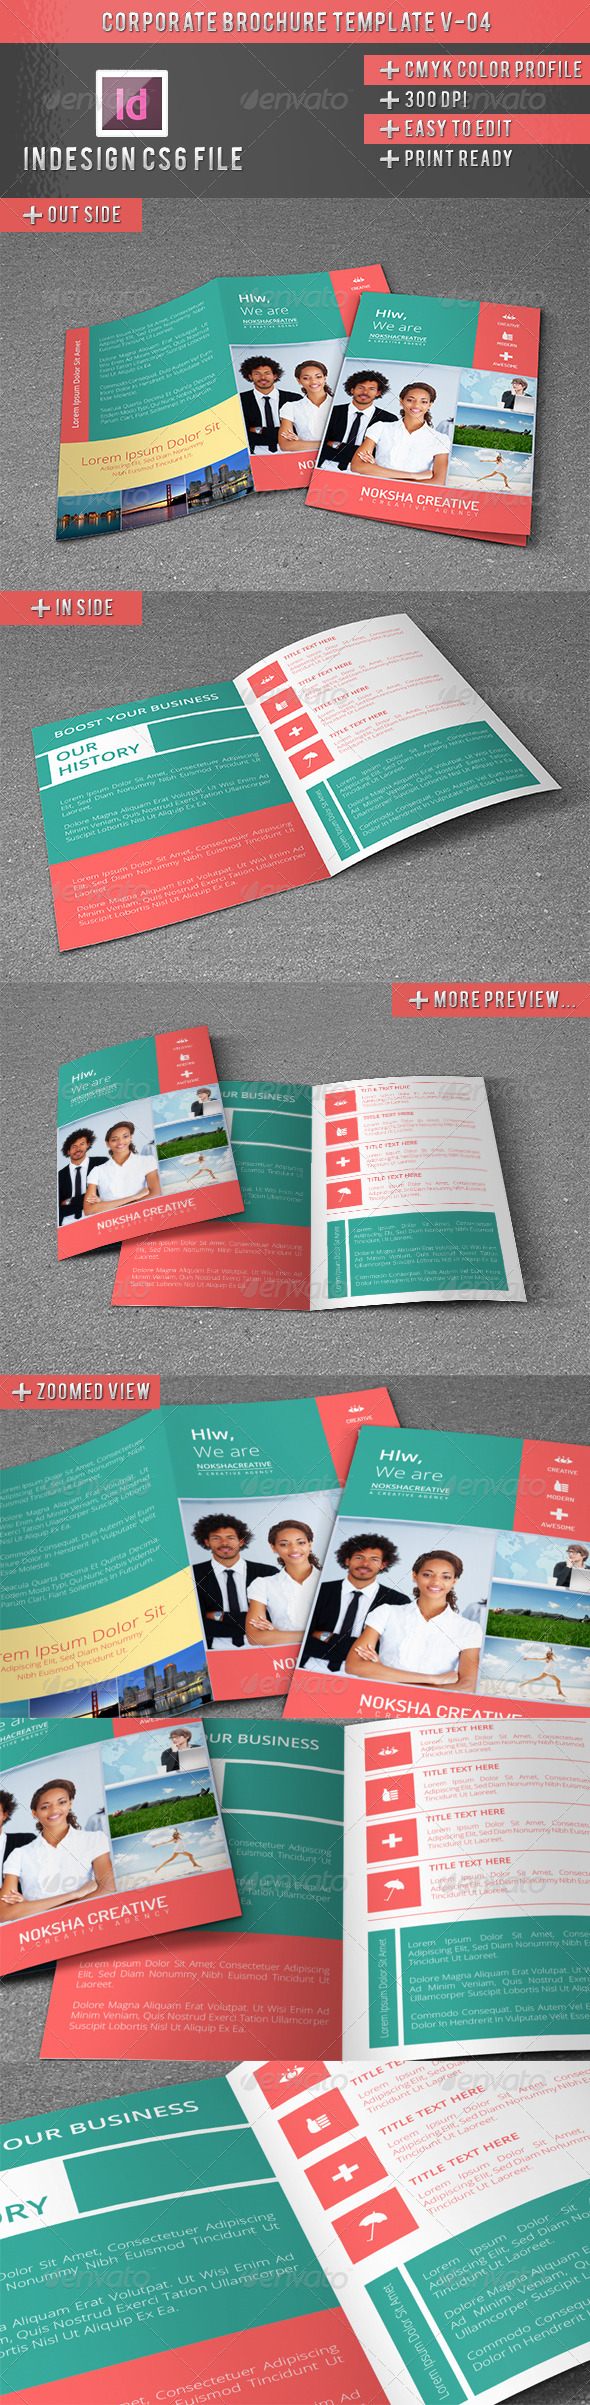 Corporate BiFold Brochure V-04 - Brochures Print Templates